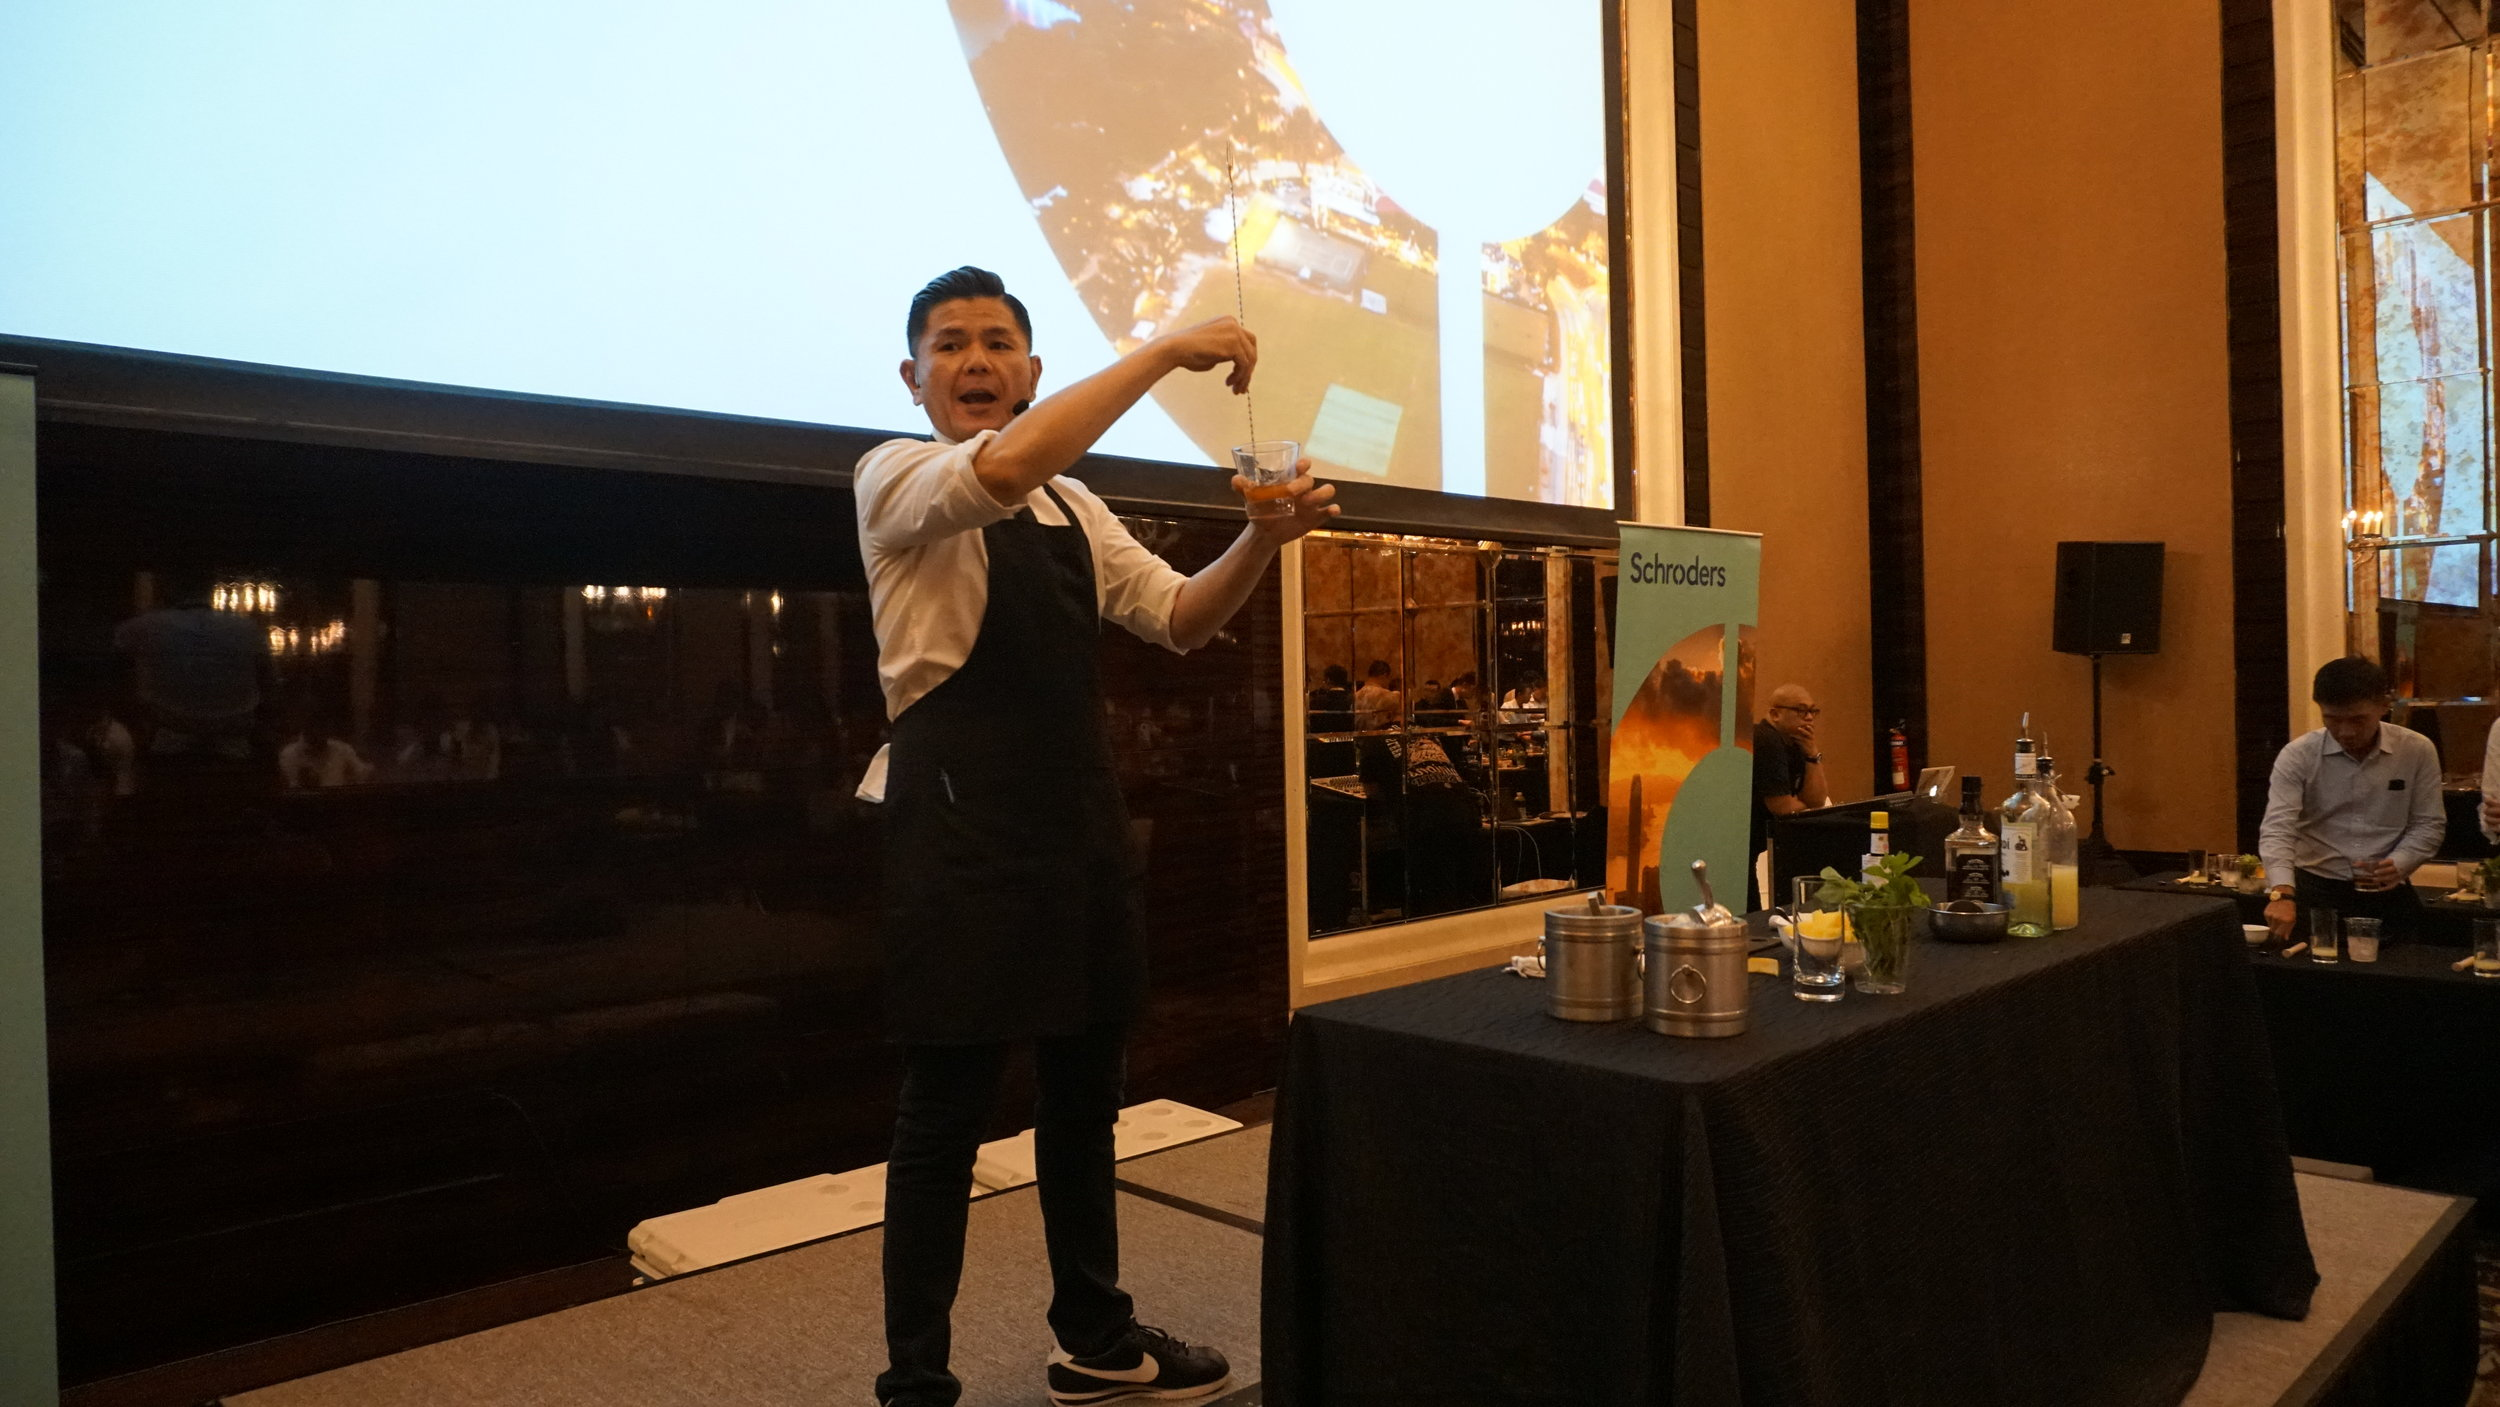 StRegis_Scholar_Mixology_Workshop_0011.JPG